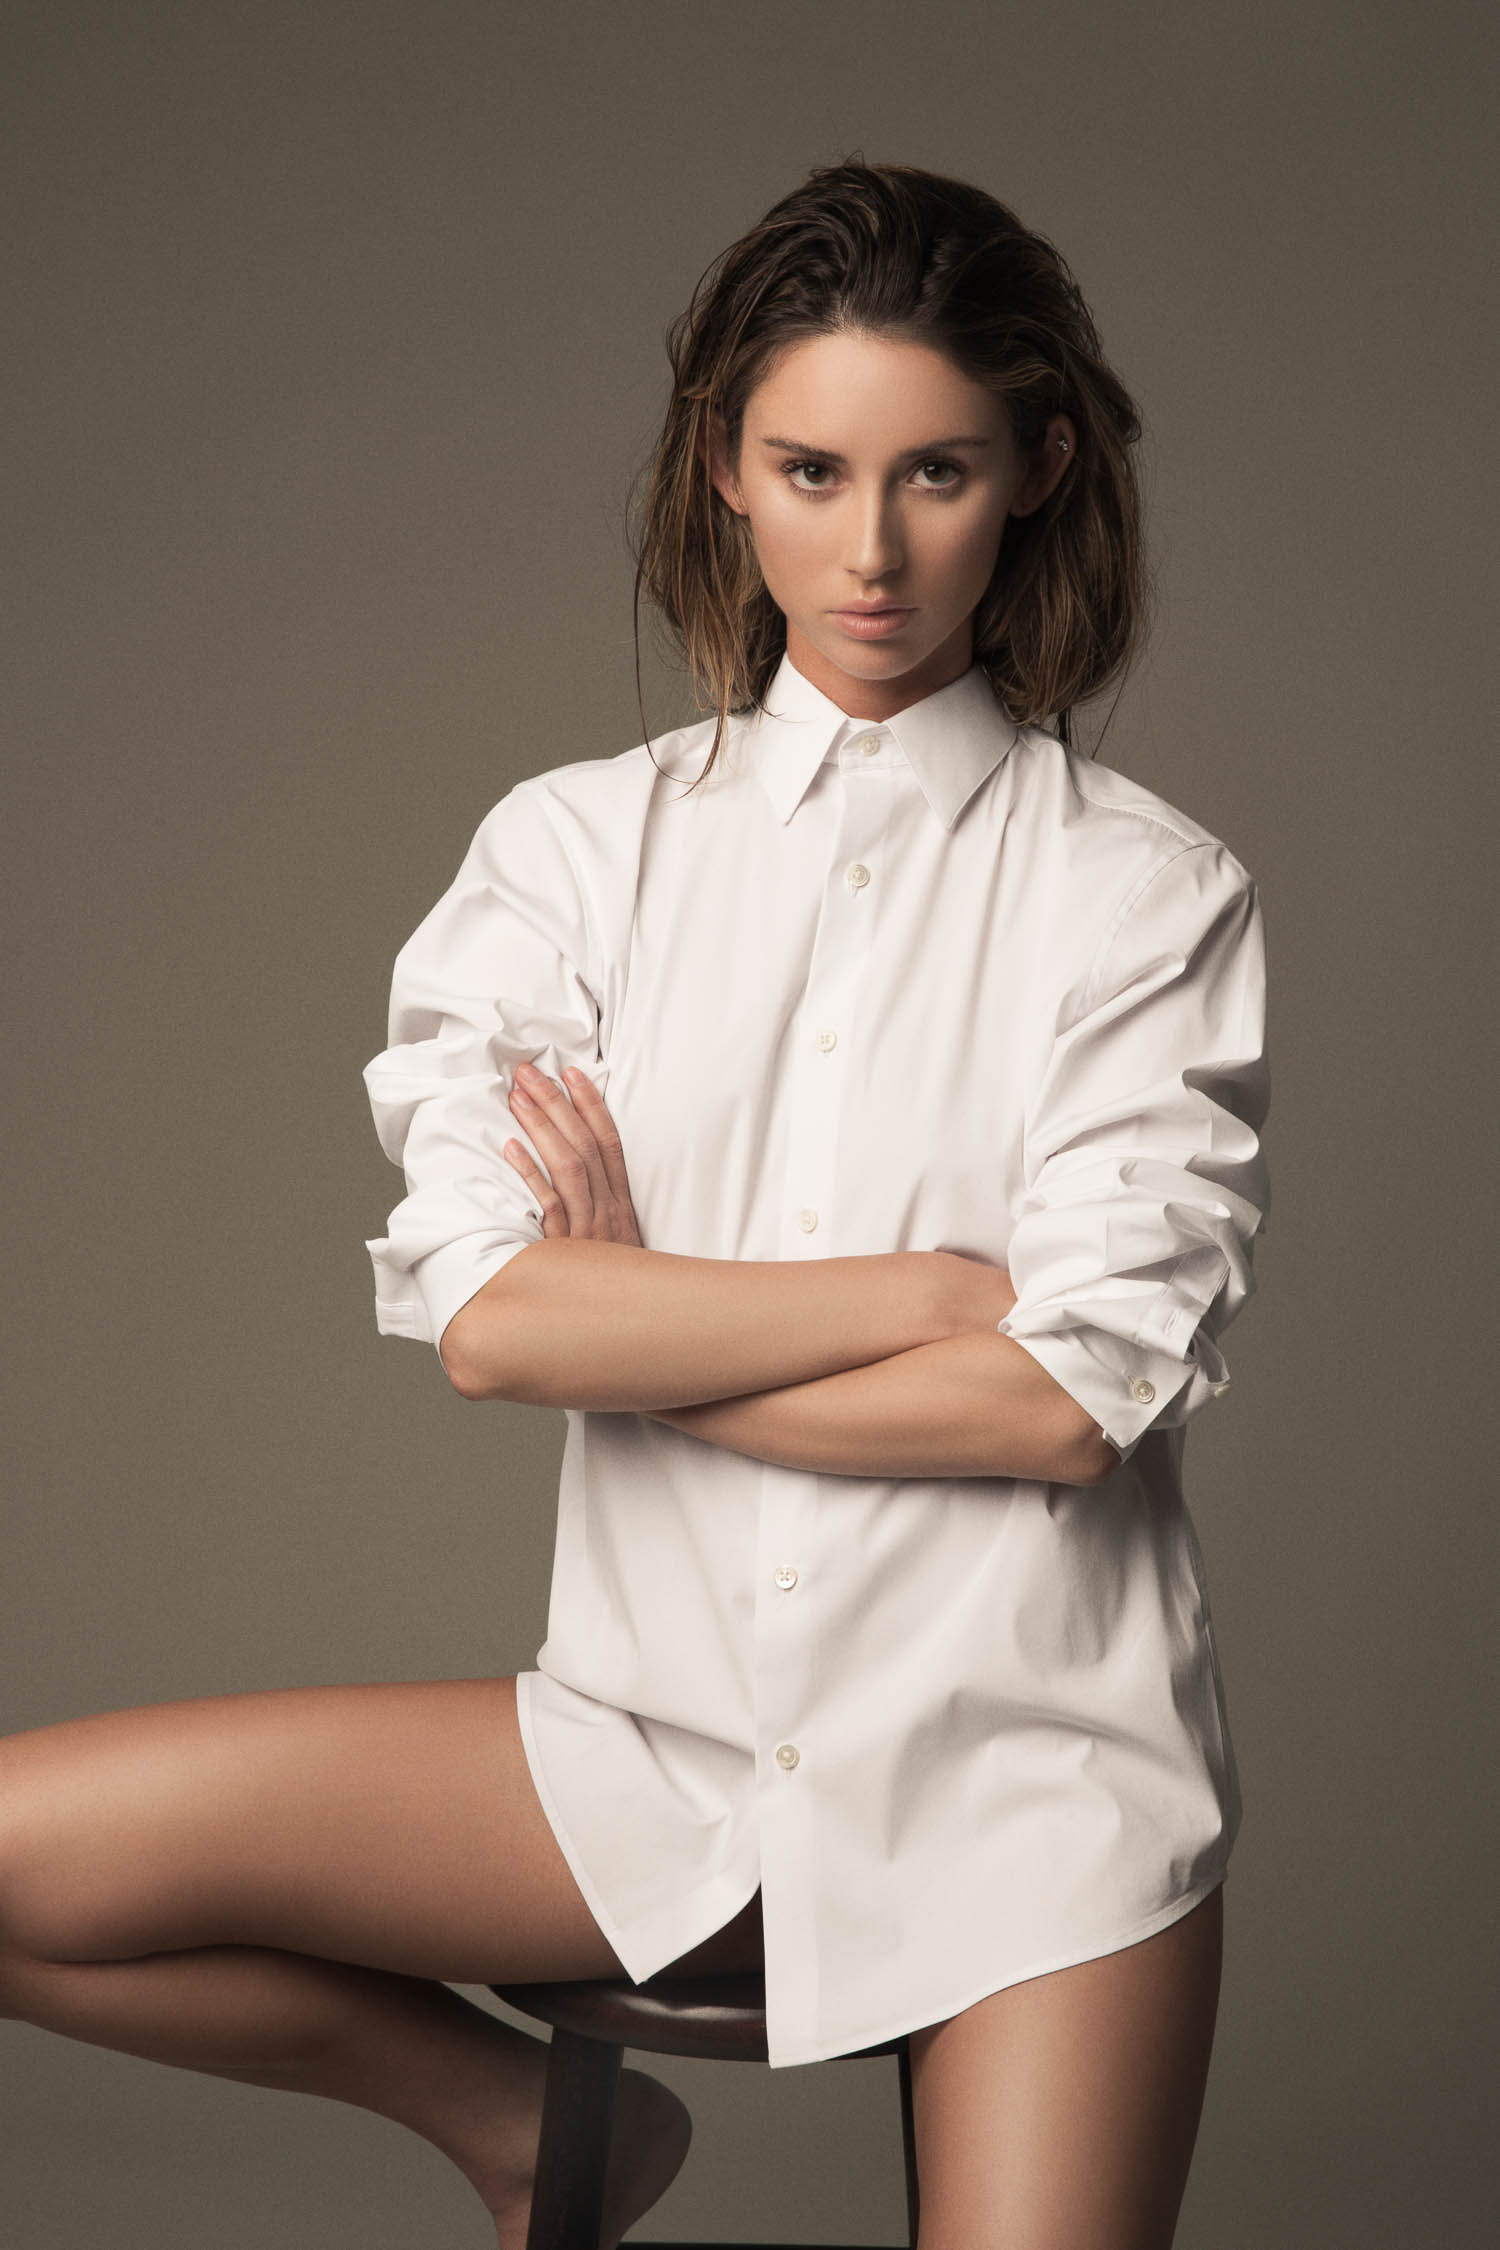 Fashion photography in Anchorage Alaska of a model in a white dress shirt